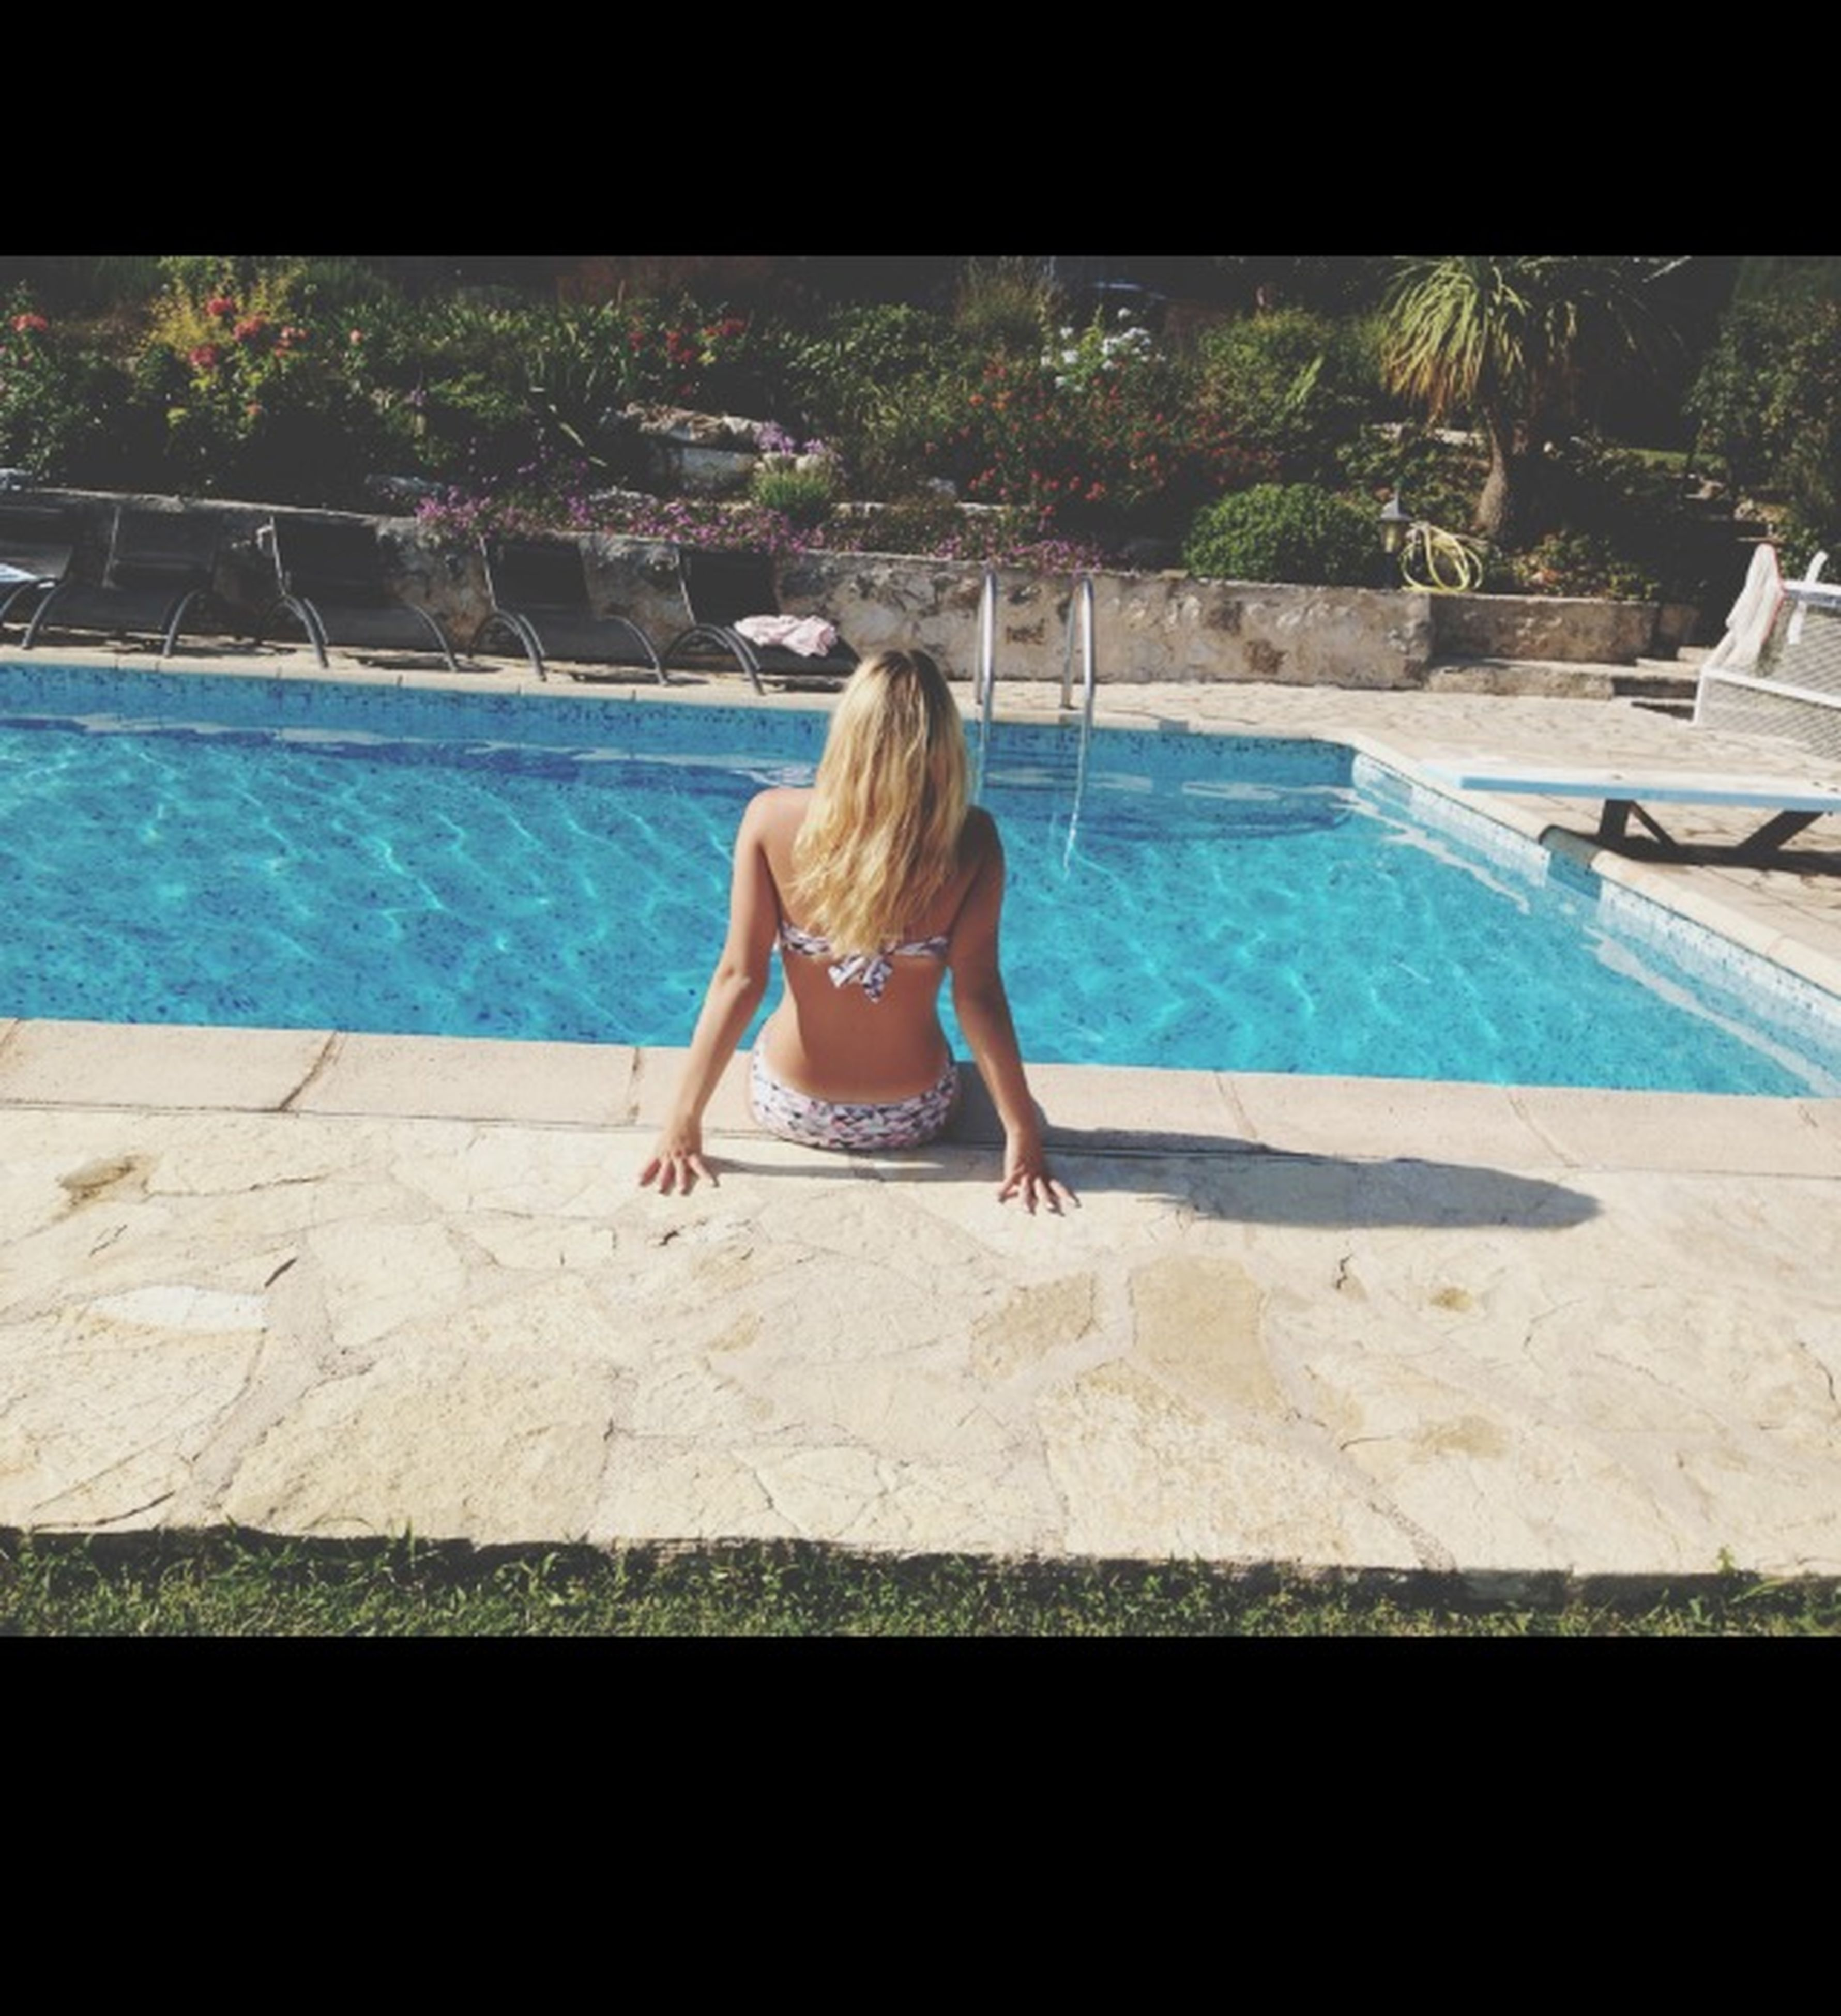 full length, lifestyles, water, leisure activity, casual clothing, young adult, rear view, young women, person, standing, swimming pool, built structure, relaxation, day, sitting, architecture, barefoot